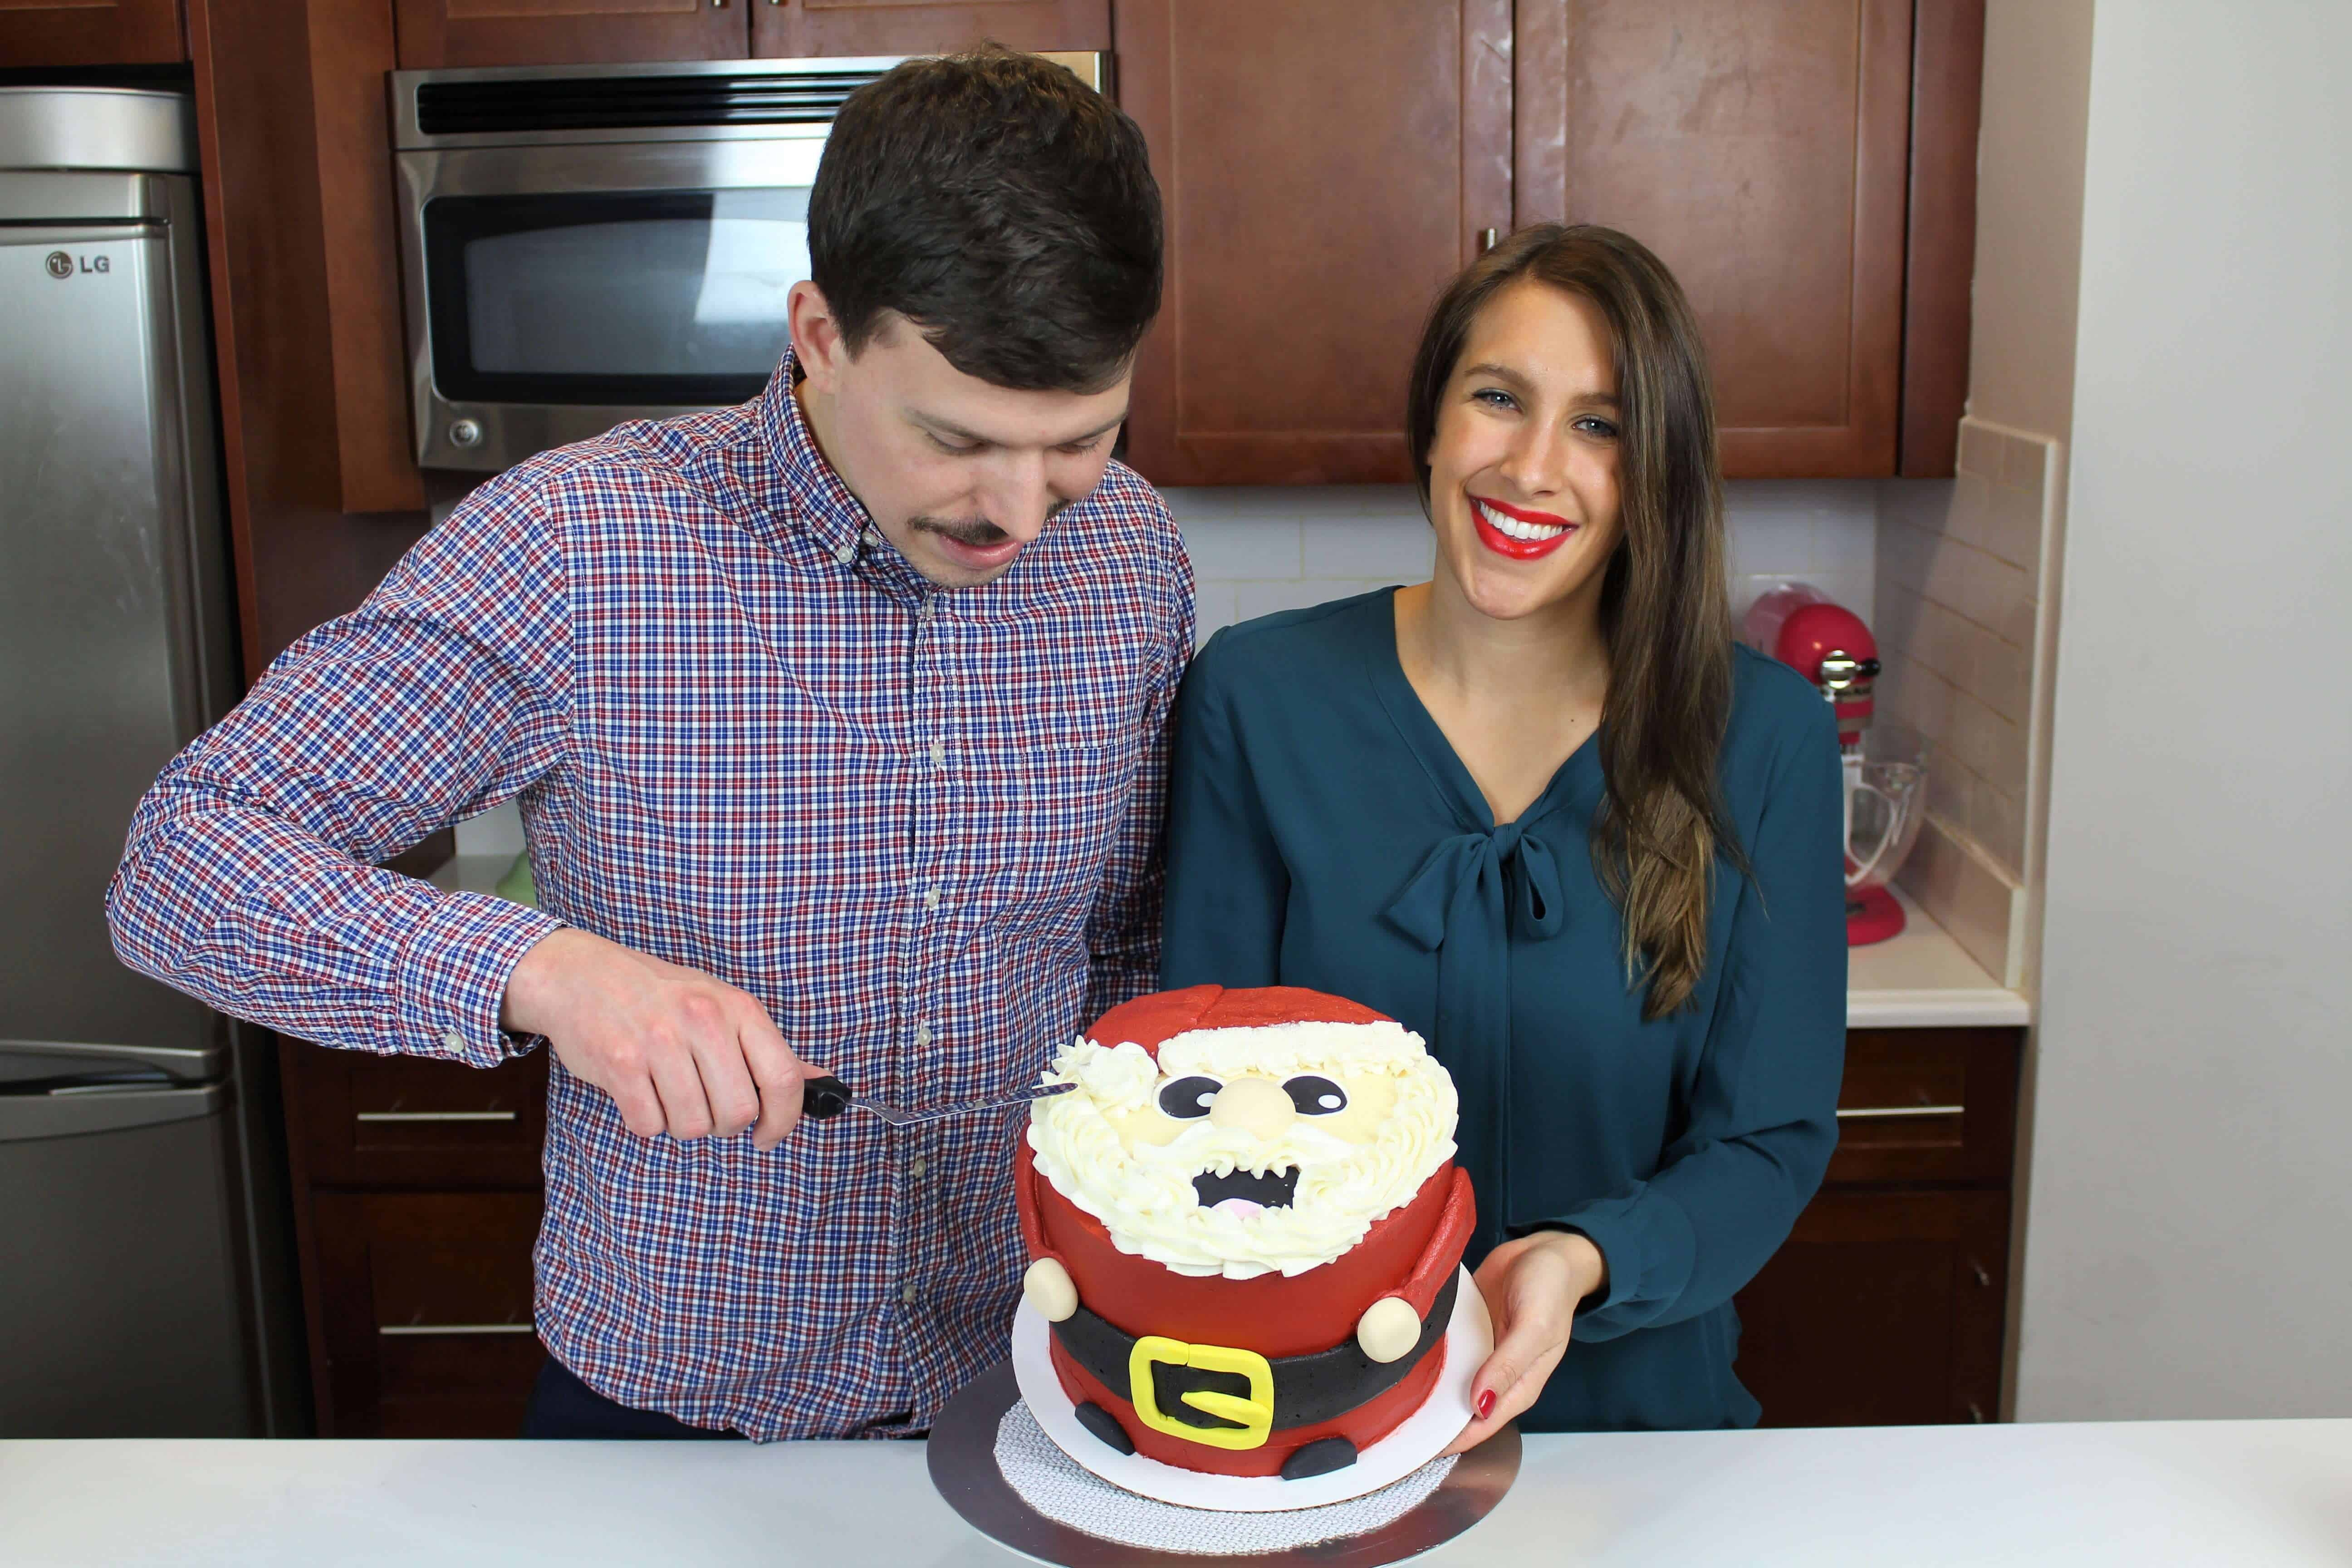 Image of Chelsey White and Stephen Frankola making a Santa Claus Cake